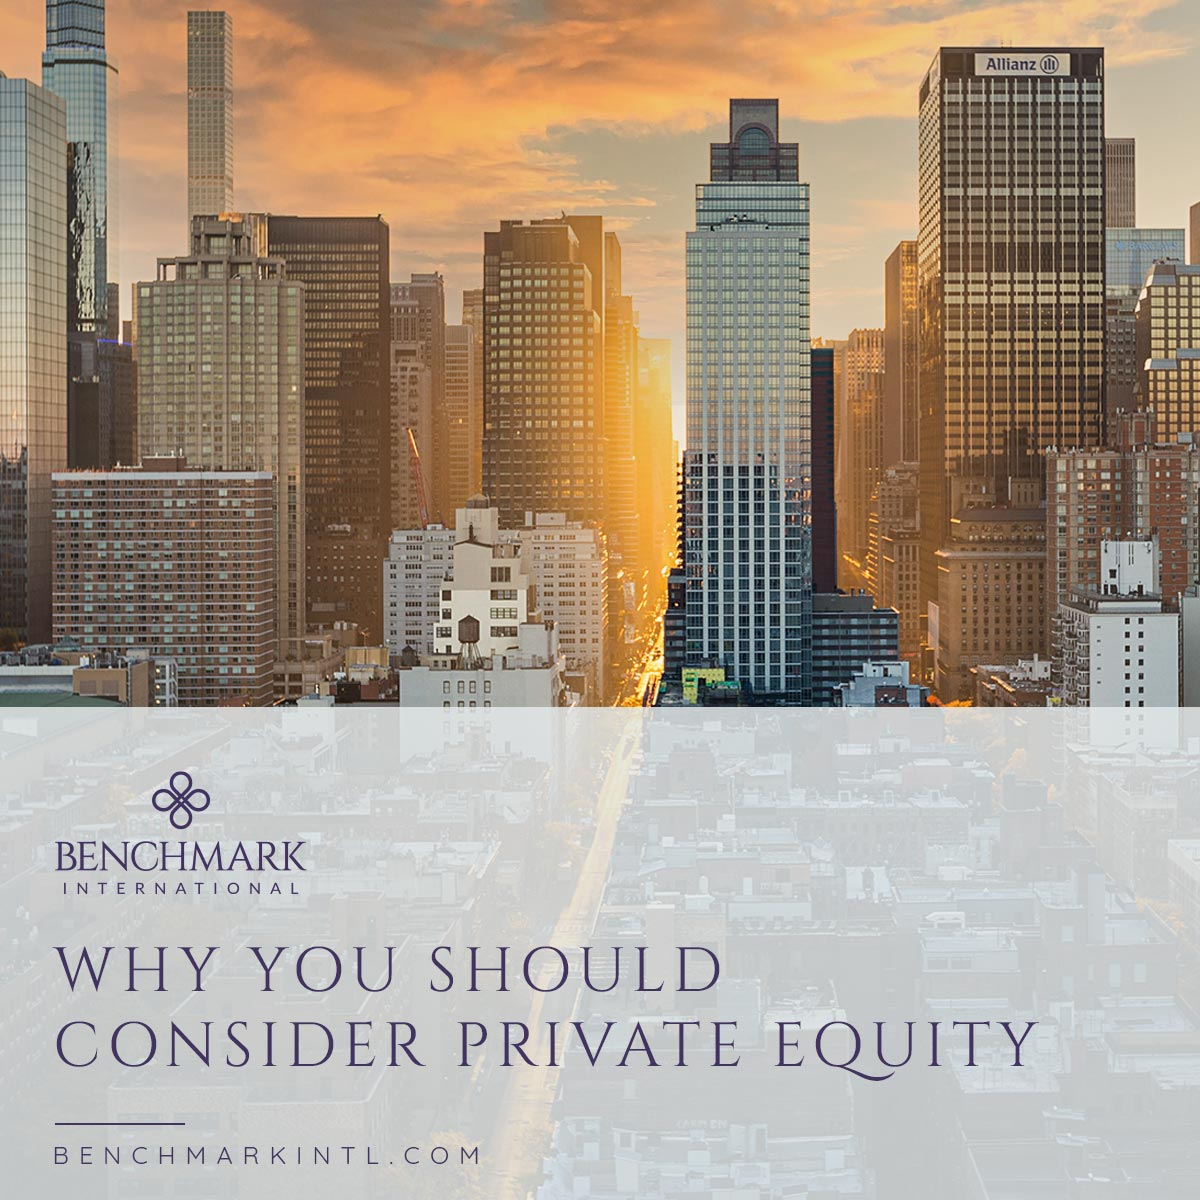 Why_You_Should_Consider_Private_Equity_Social